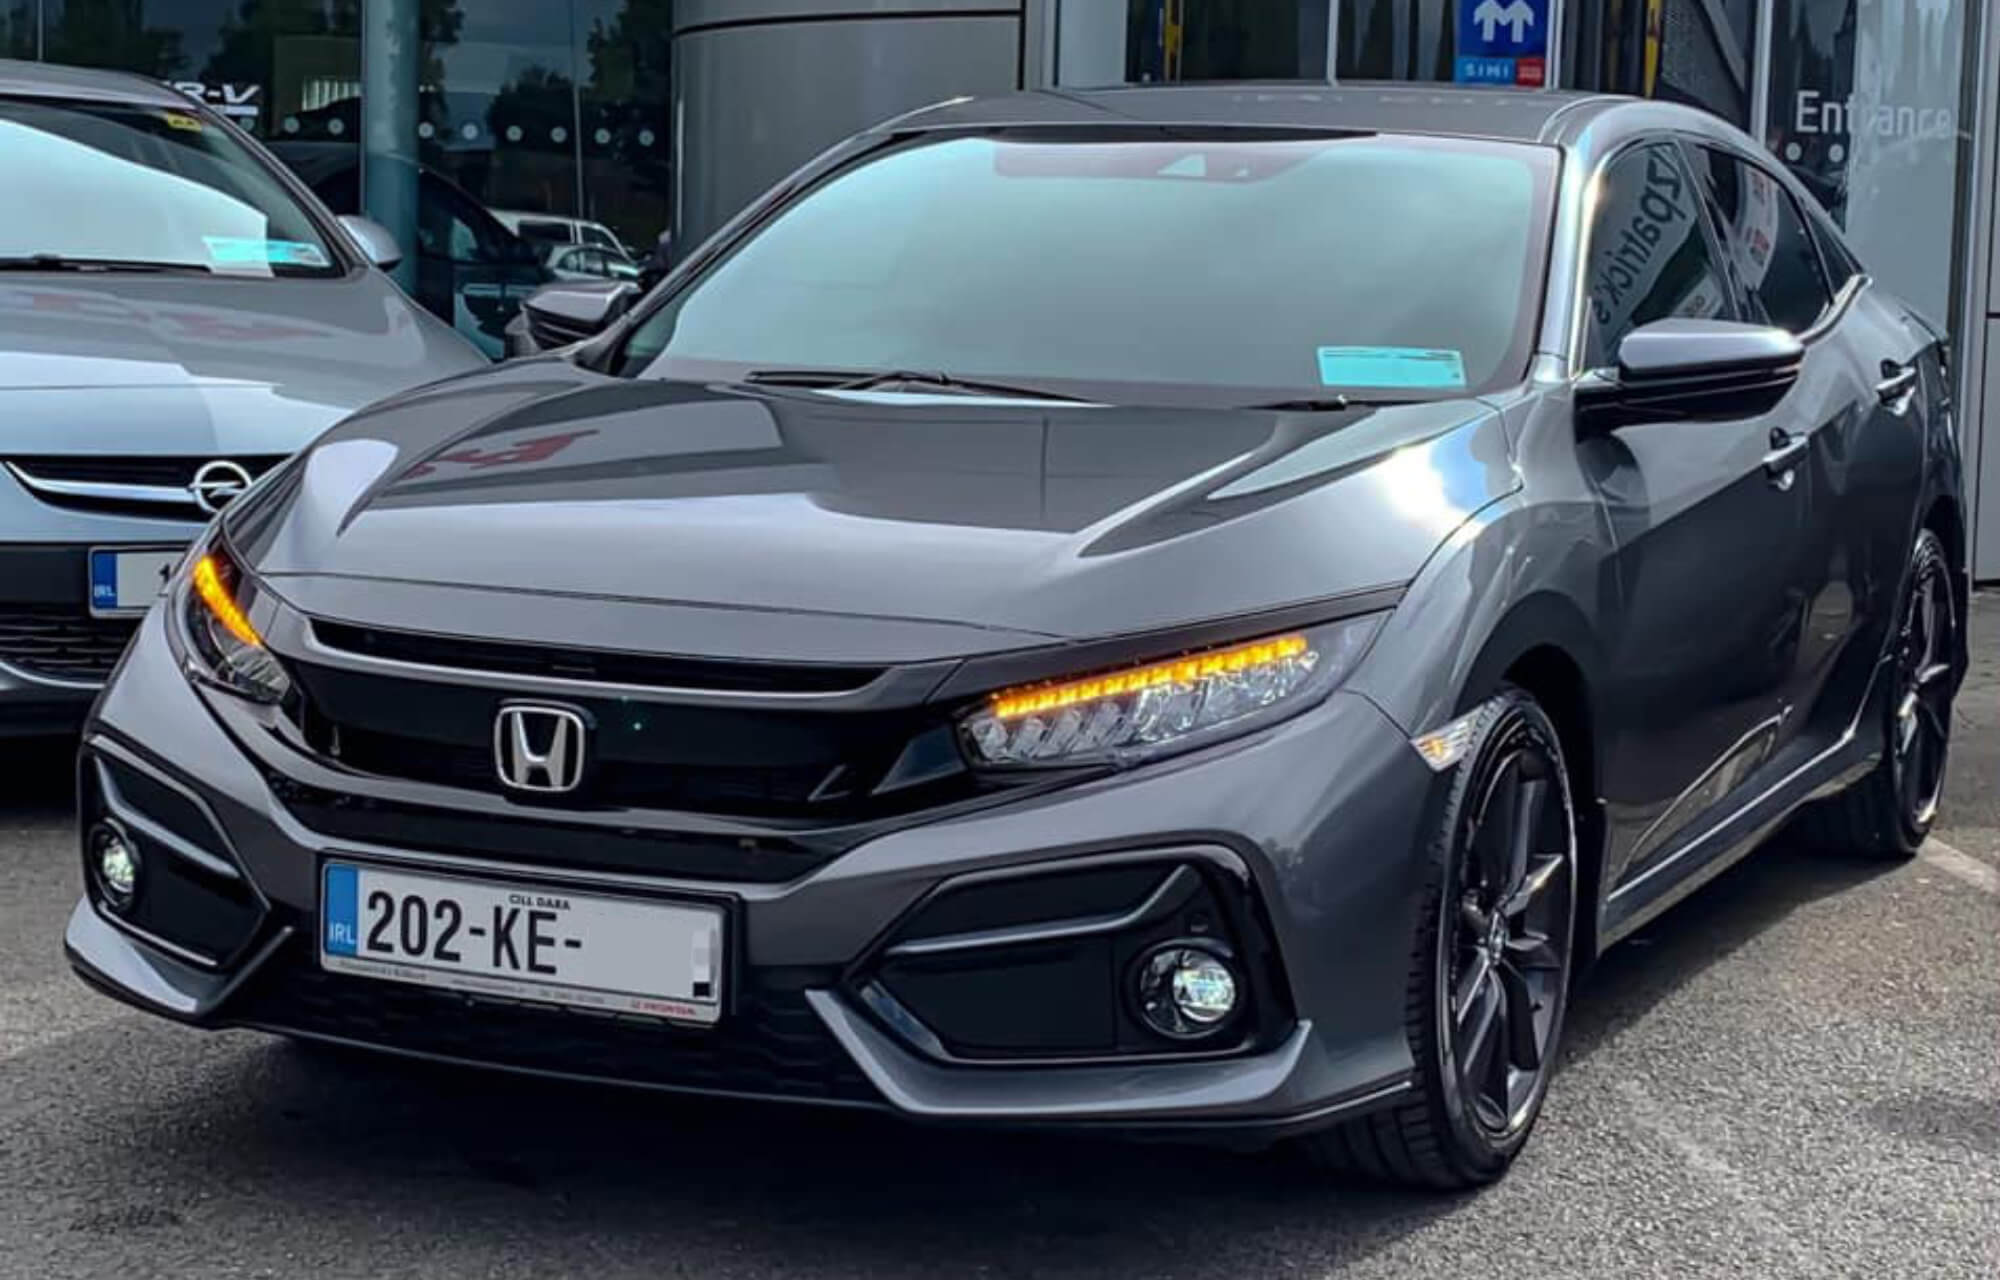 202 Customer Collections from Fitzpatrick's Honda Centre Kildare